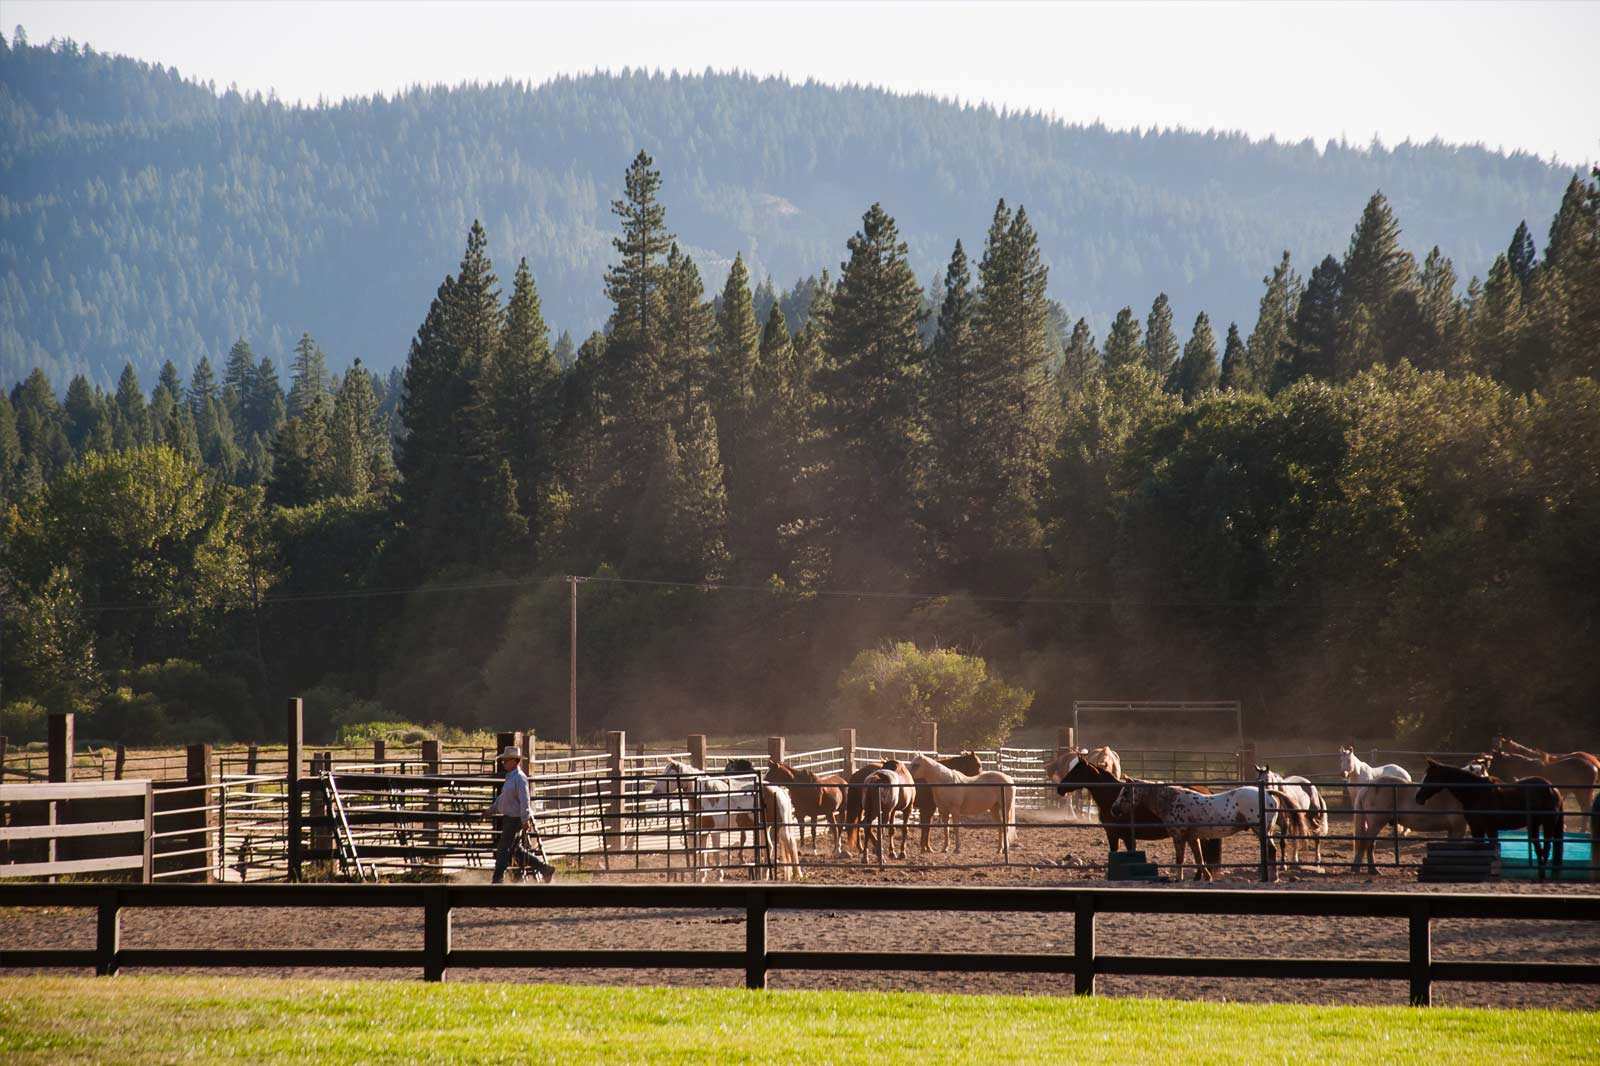 Horses in the corral in front of the tall pines at Greenhorn Ranch